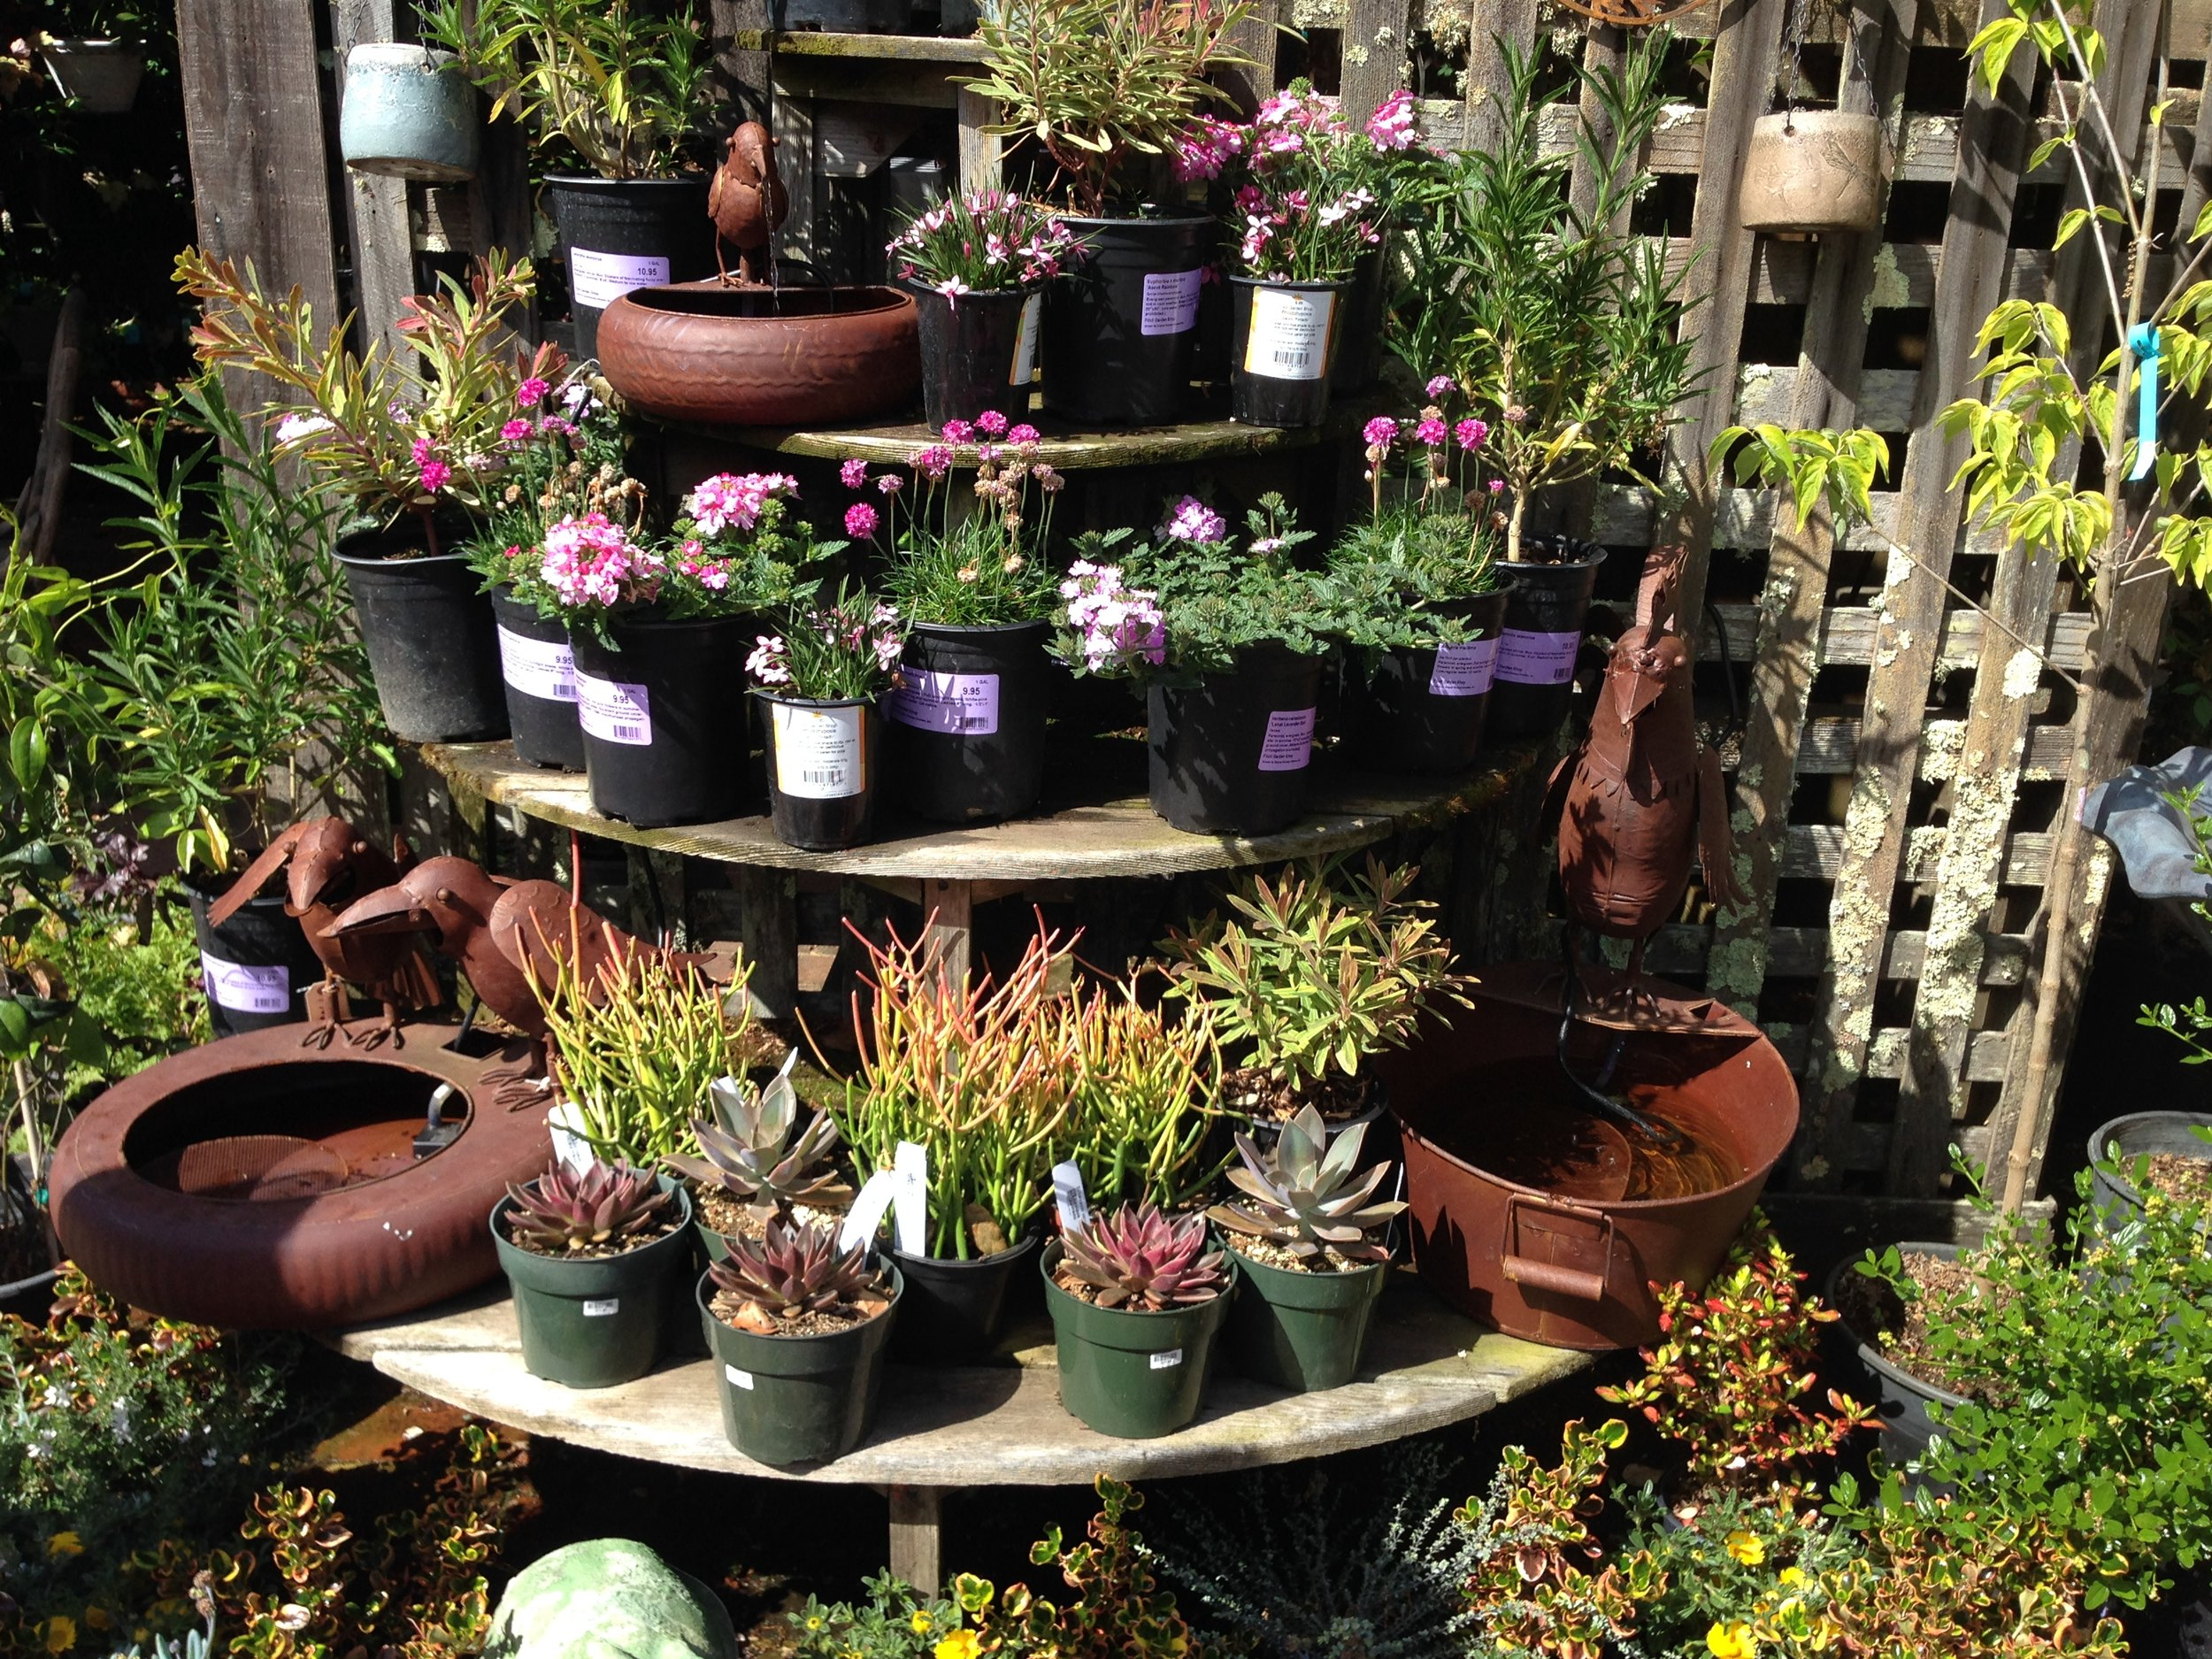 The Beauty of Filoli: Plants for Sale